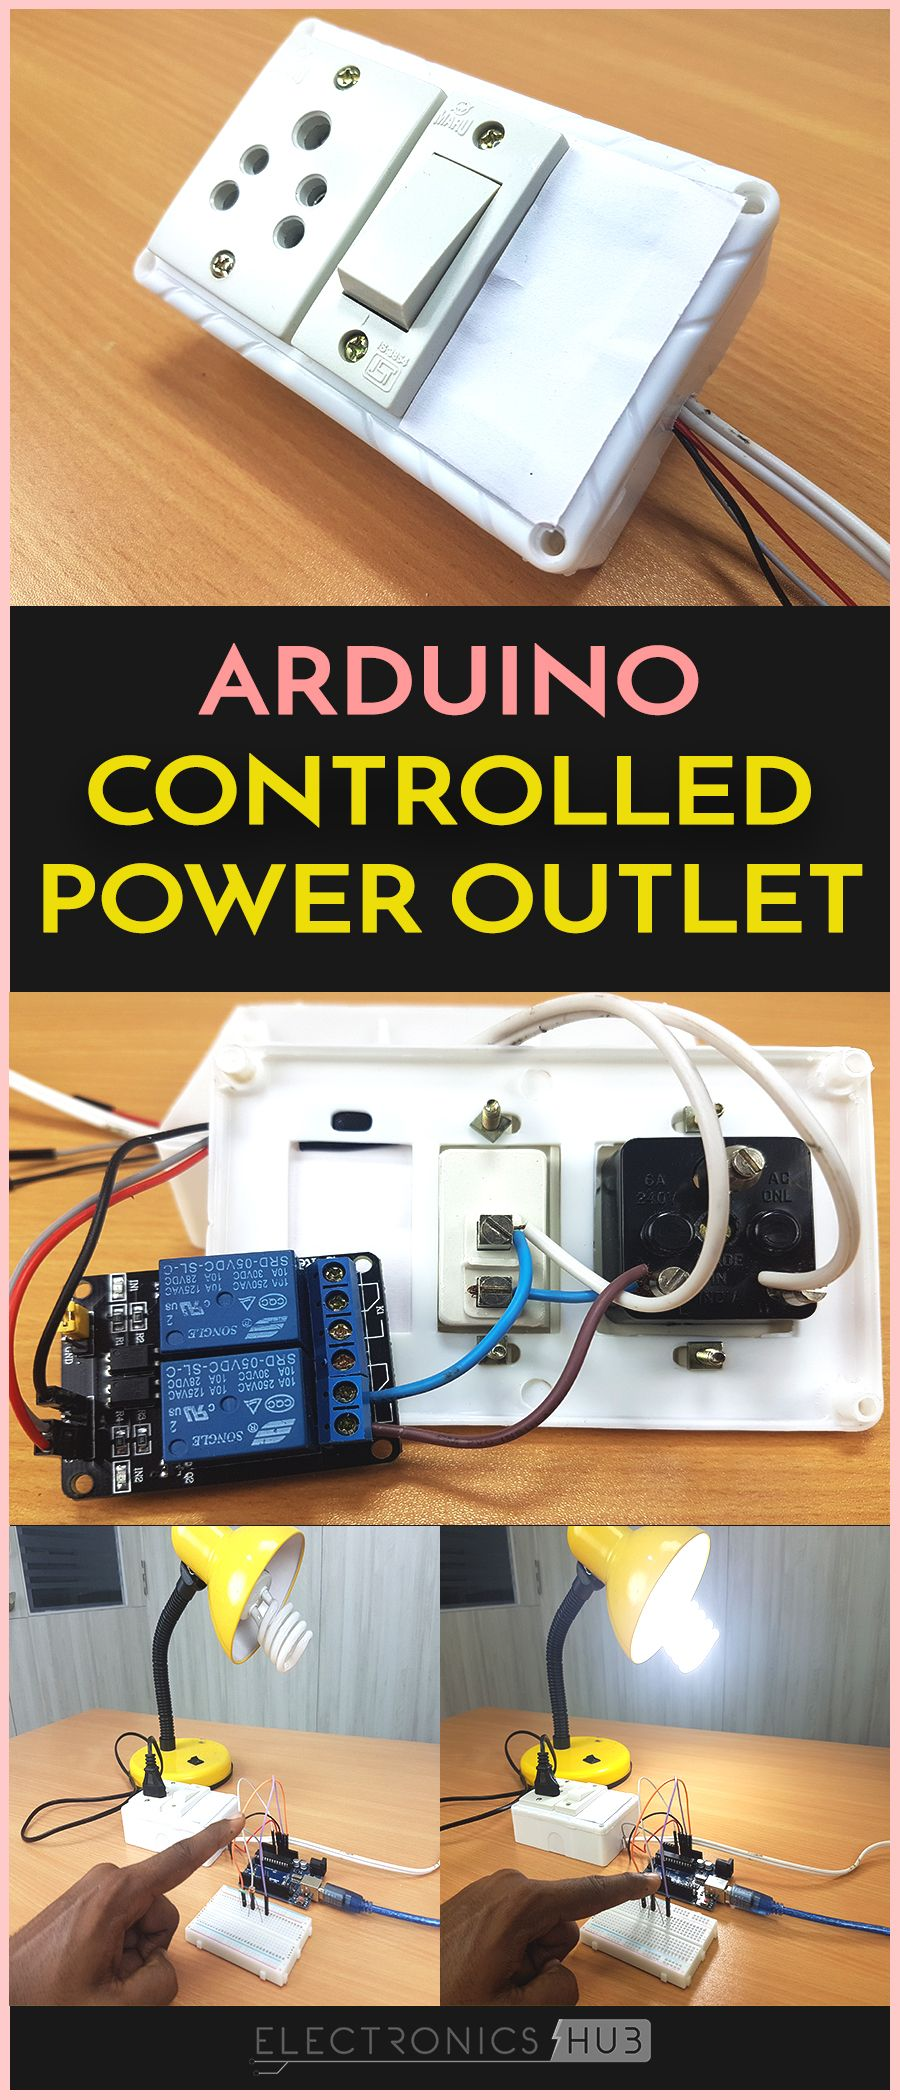 Arduino Controlled Power Outlet Projects And Tech Electronics Project Circuit Diagram Hobby